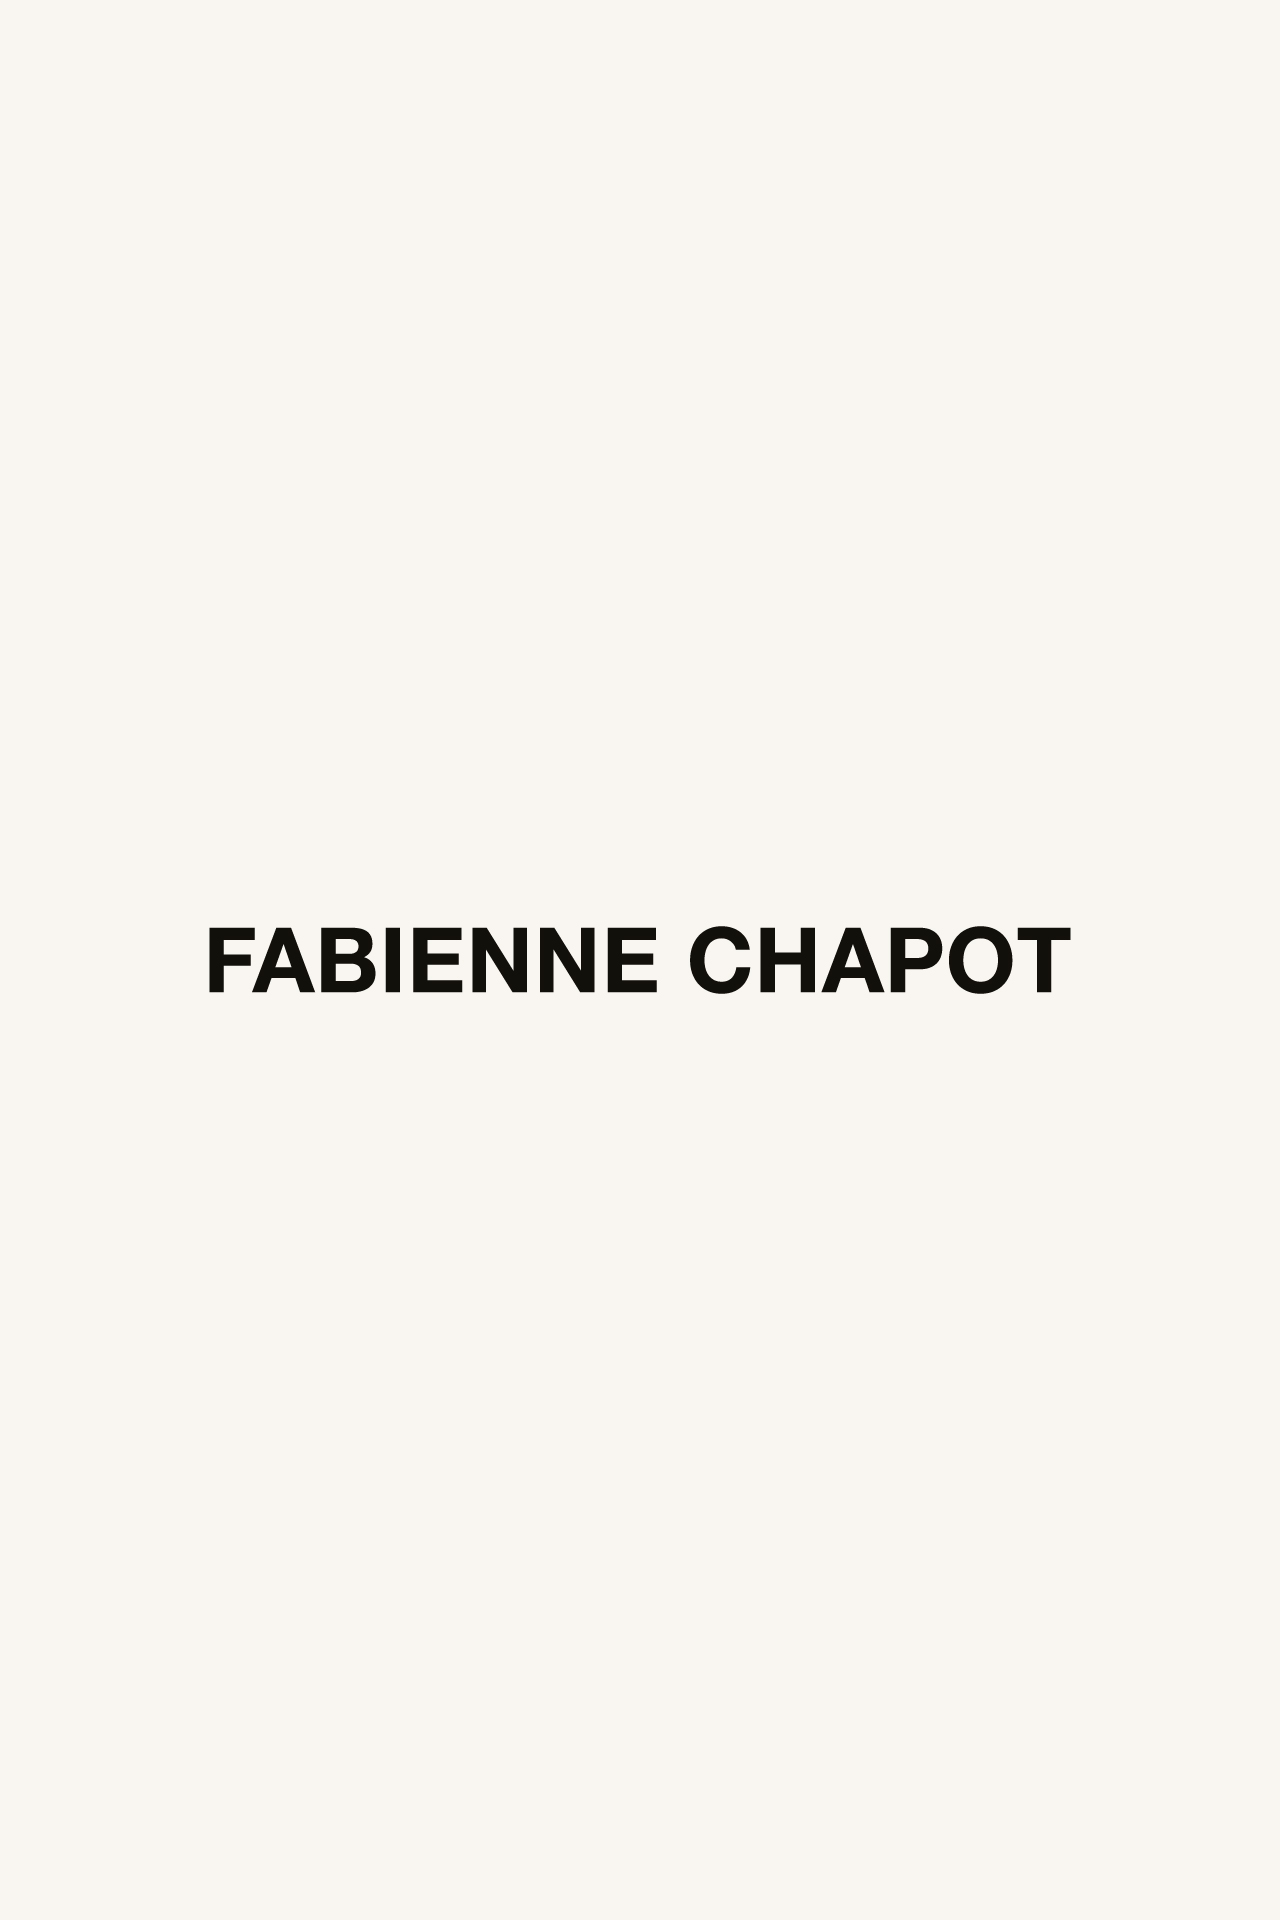 741b2a4cca0a SALE 50% - Fabienne Chapot - The official webshop